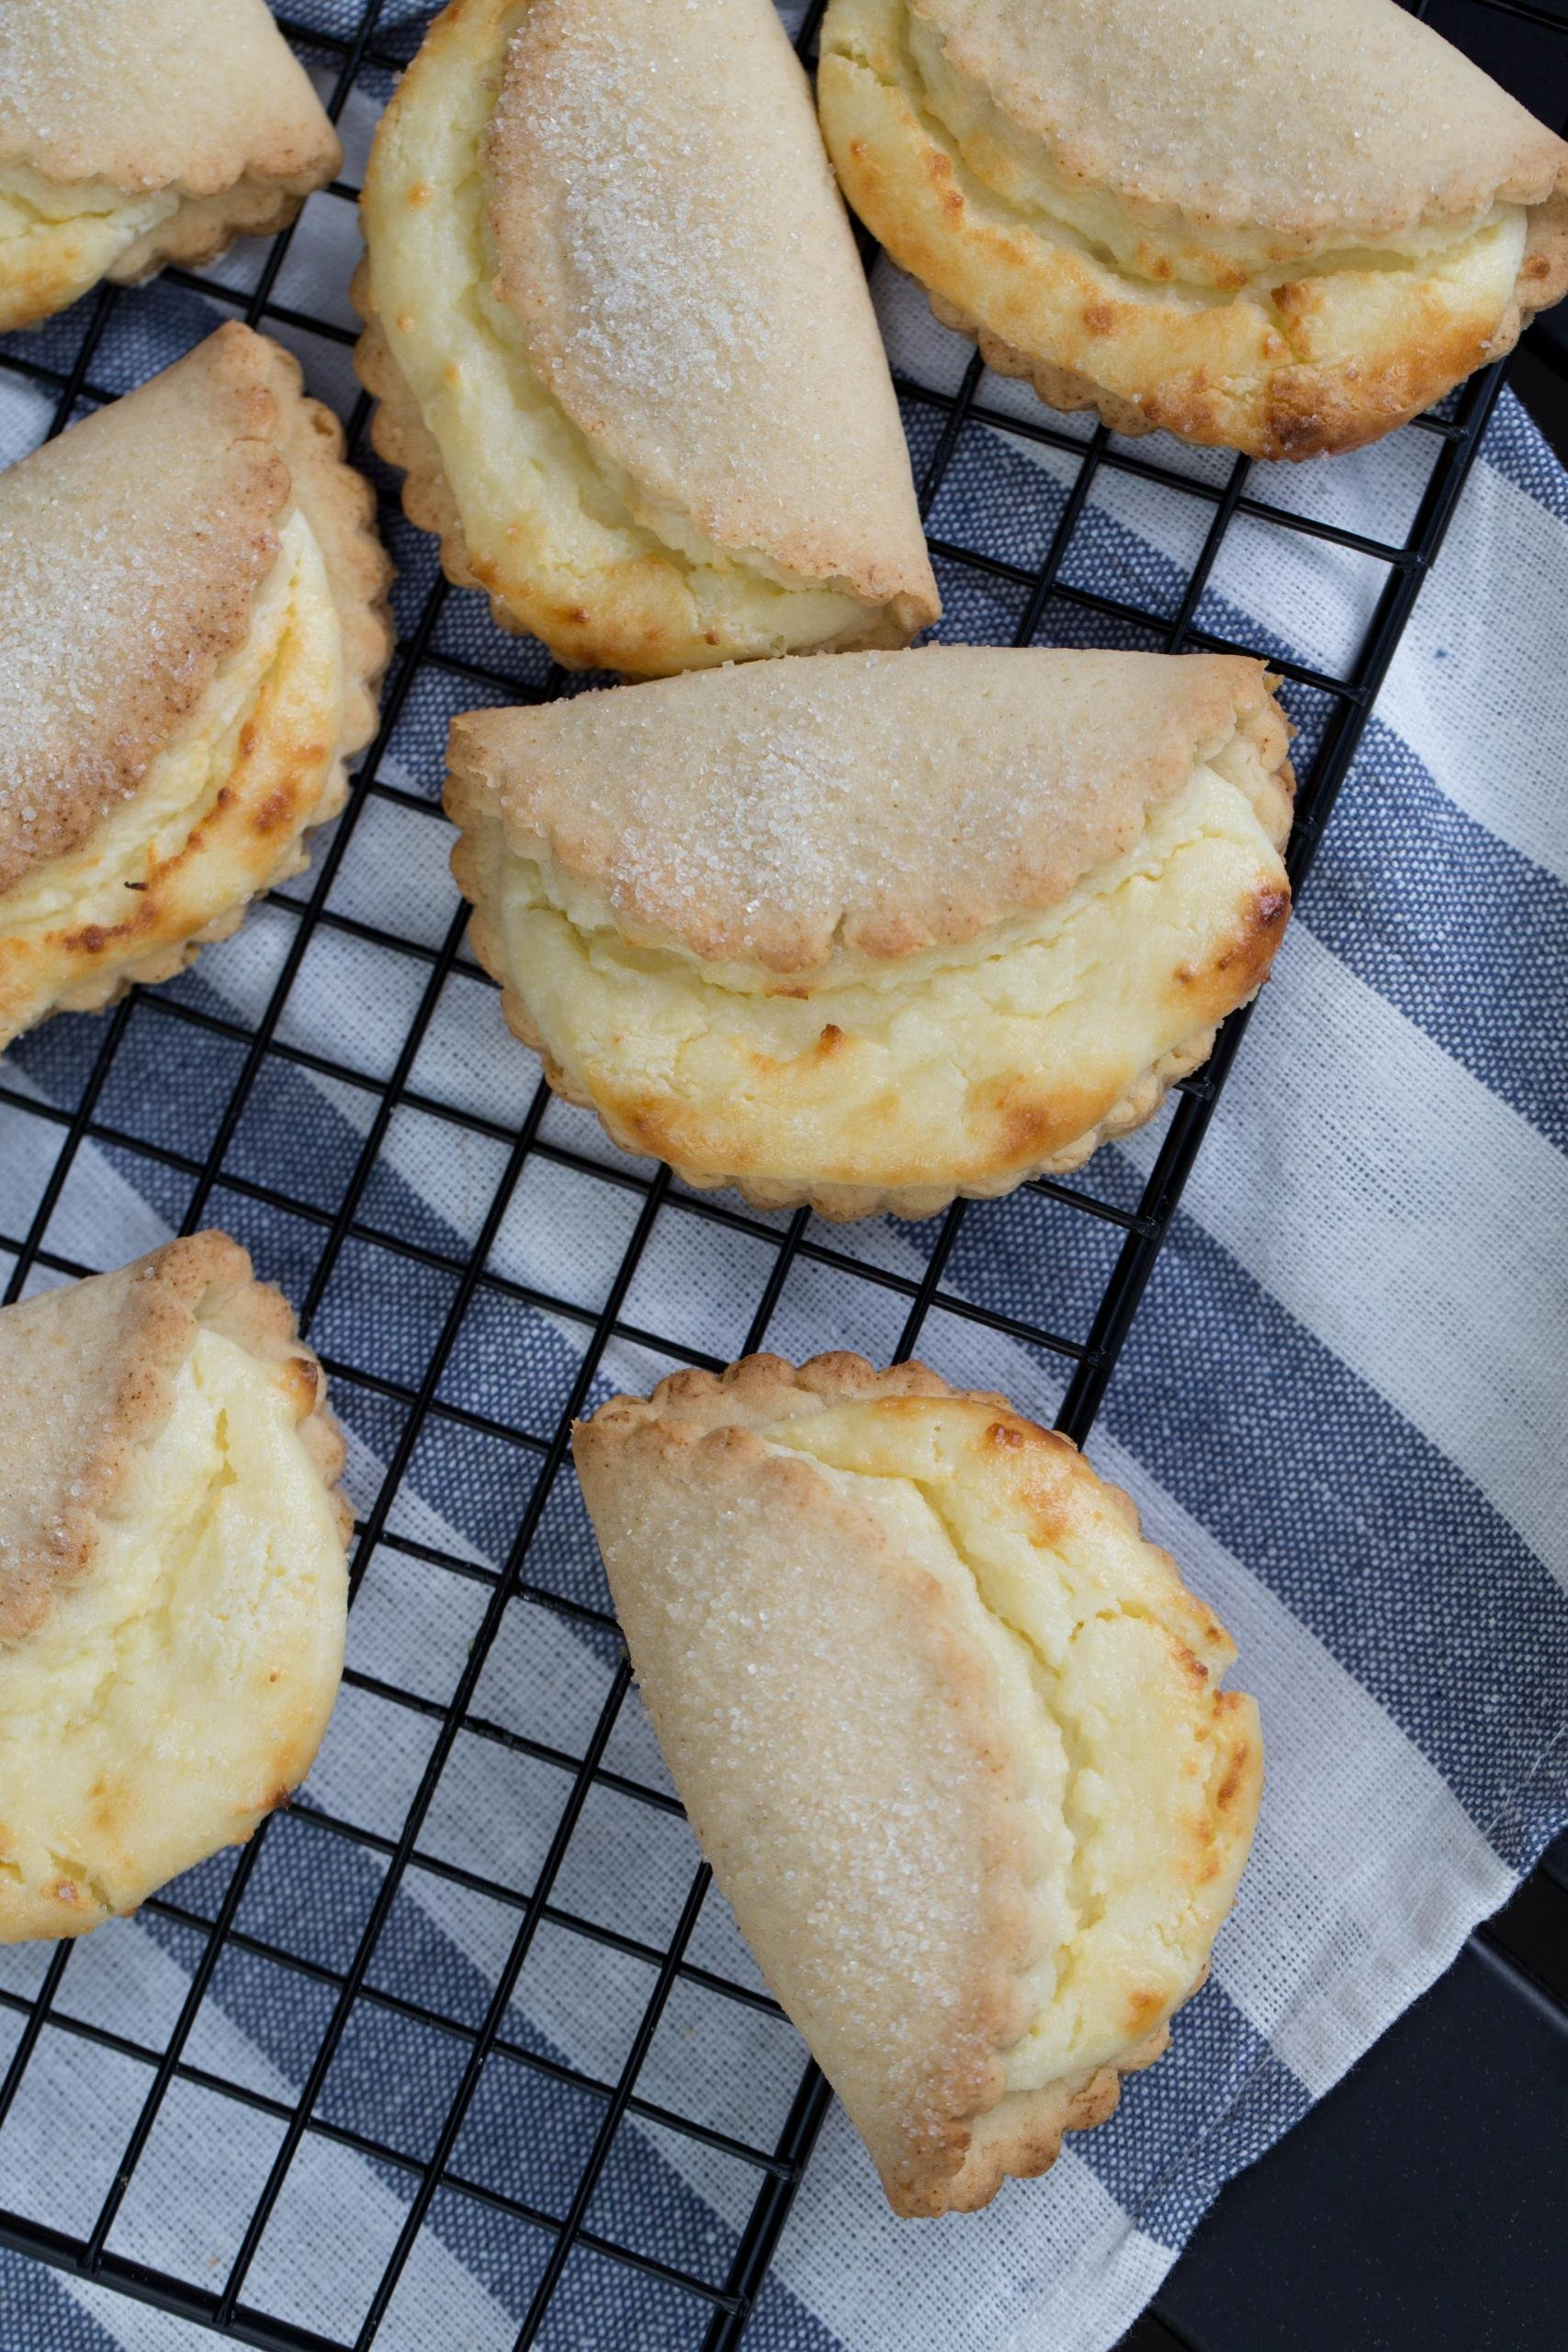 Sweet Cheese Cookies on a baking rack with a kitchen napkin under it